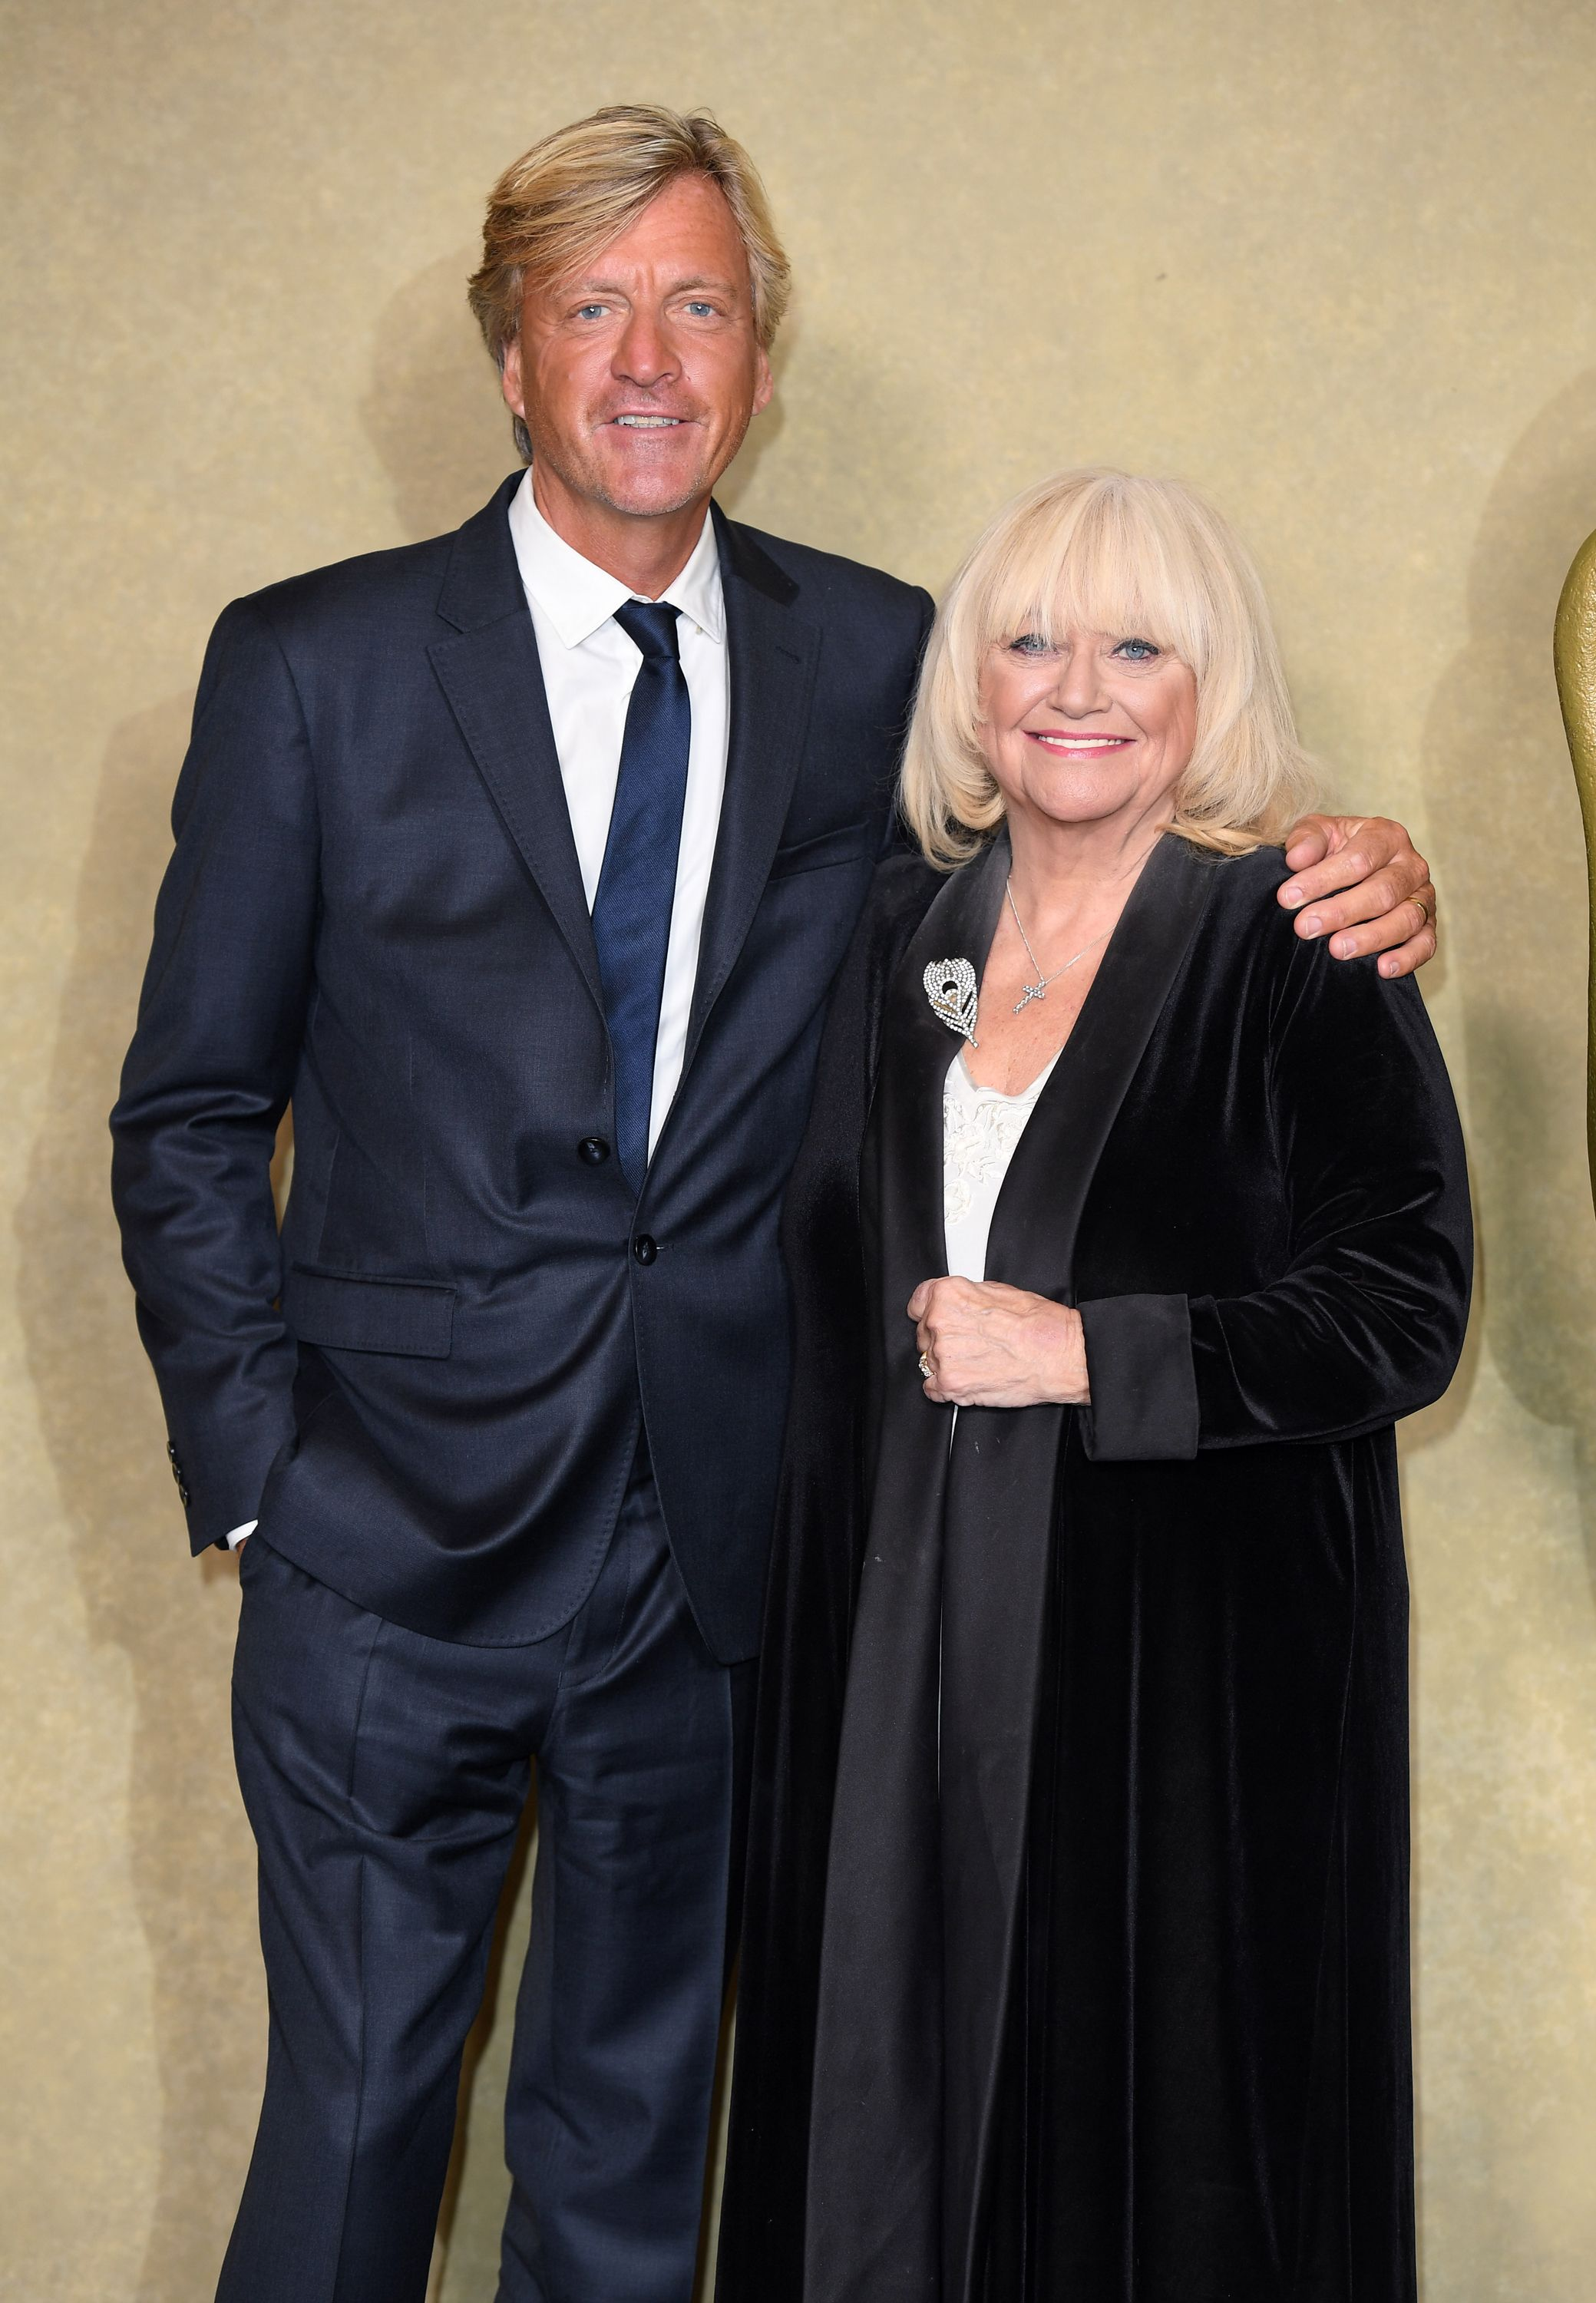 This Morning legends Richard and Judy are returning to host the show